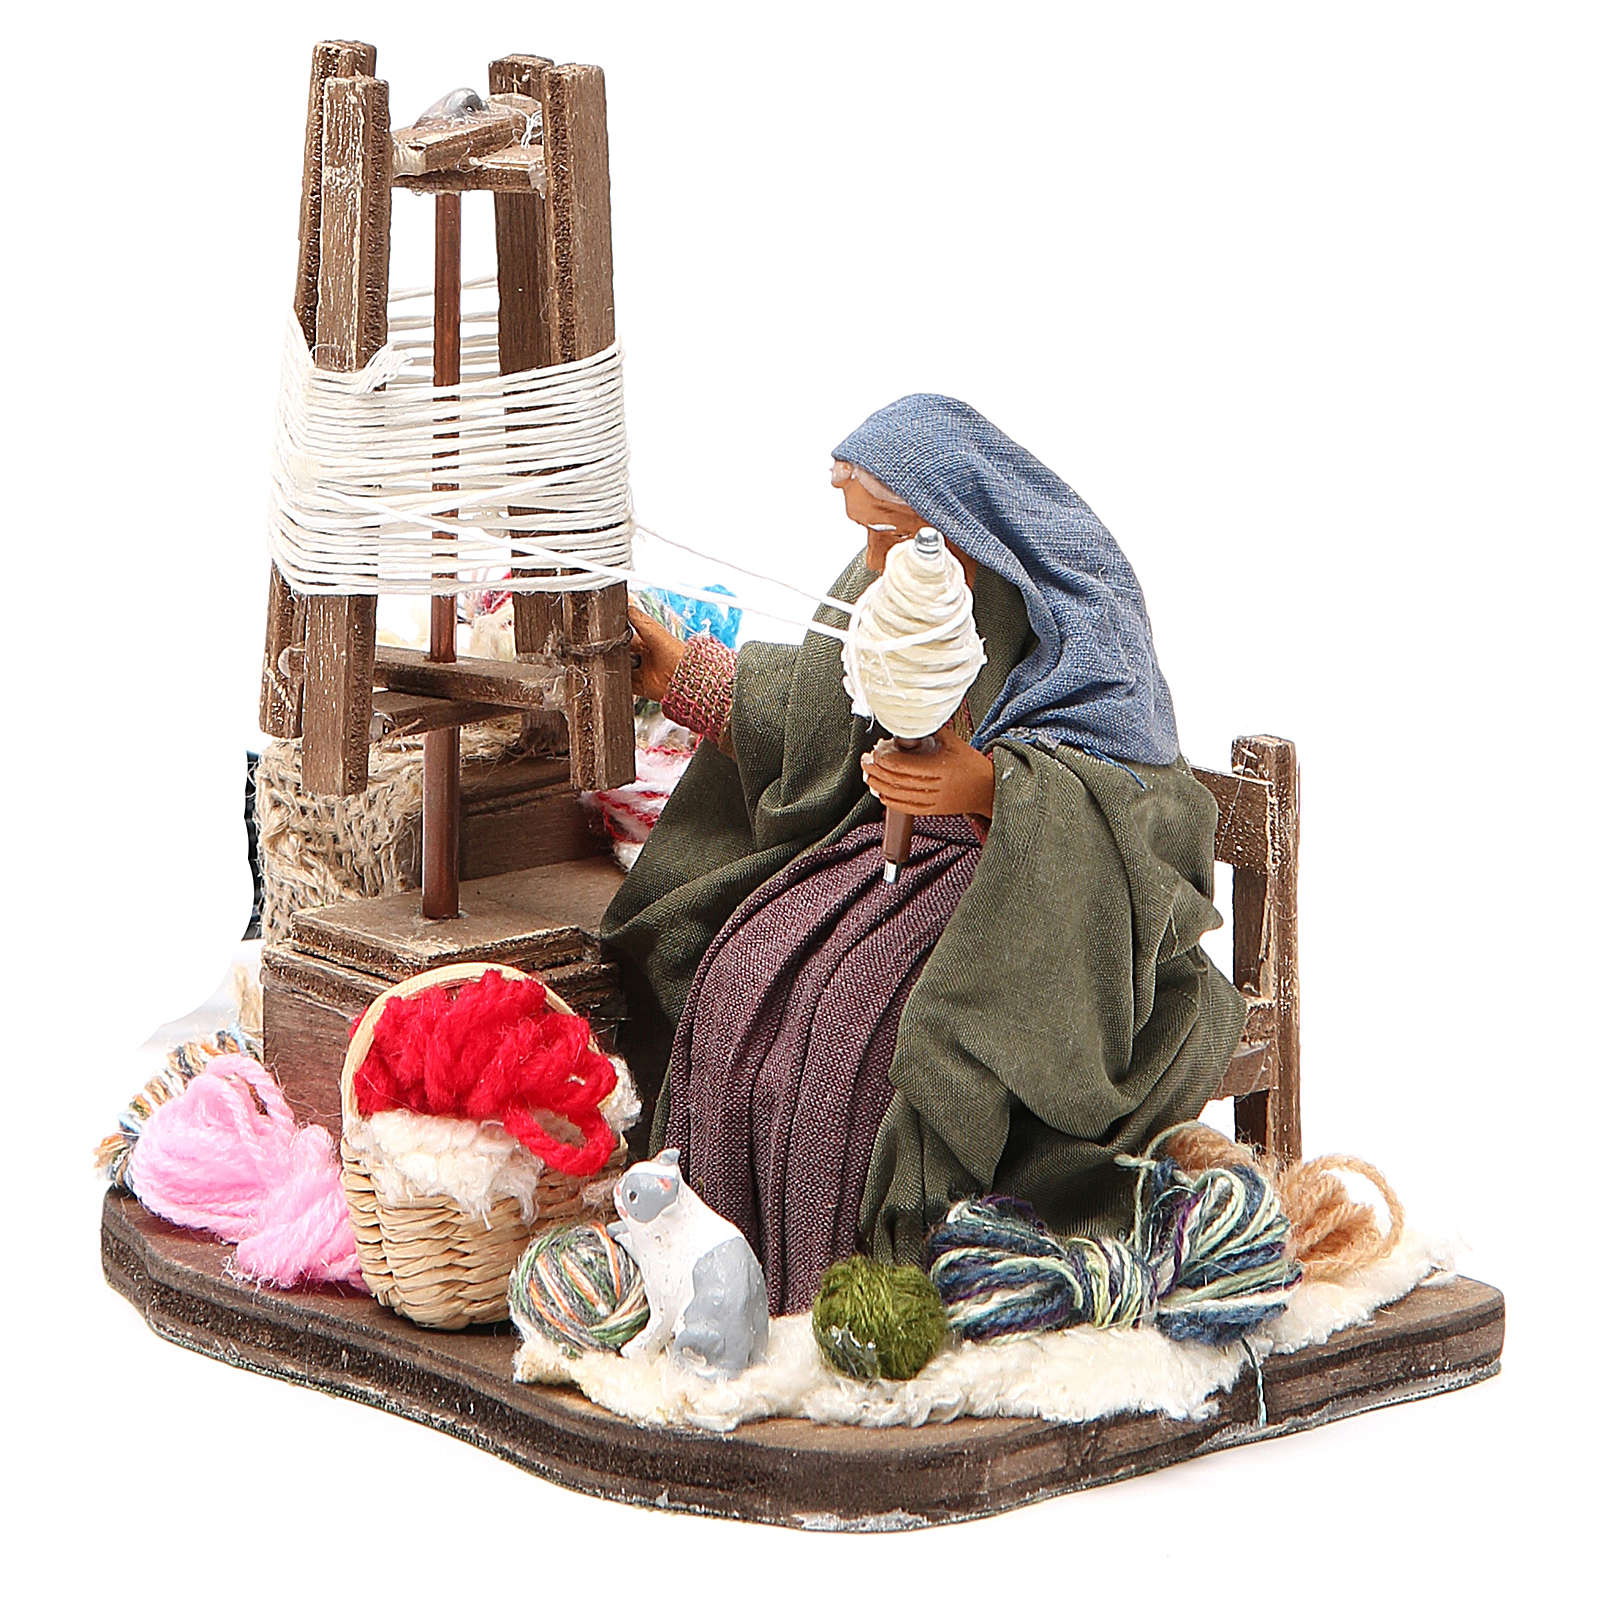 Lady spinning wool, animated Neapolitan Nativity figurine 12cm 4